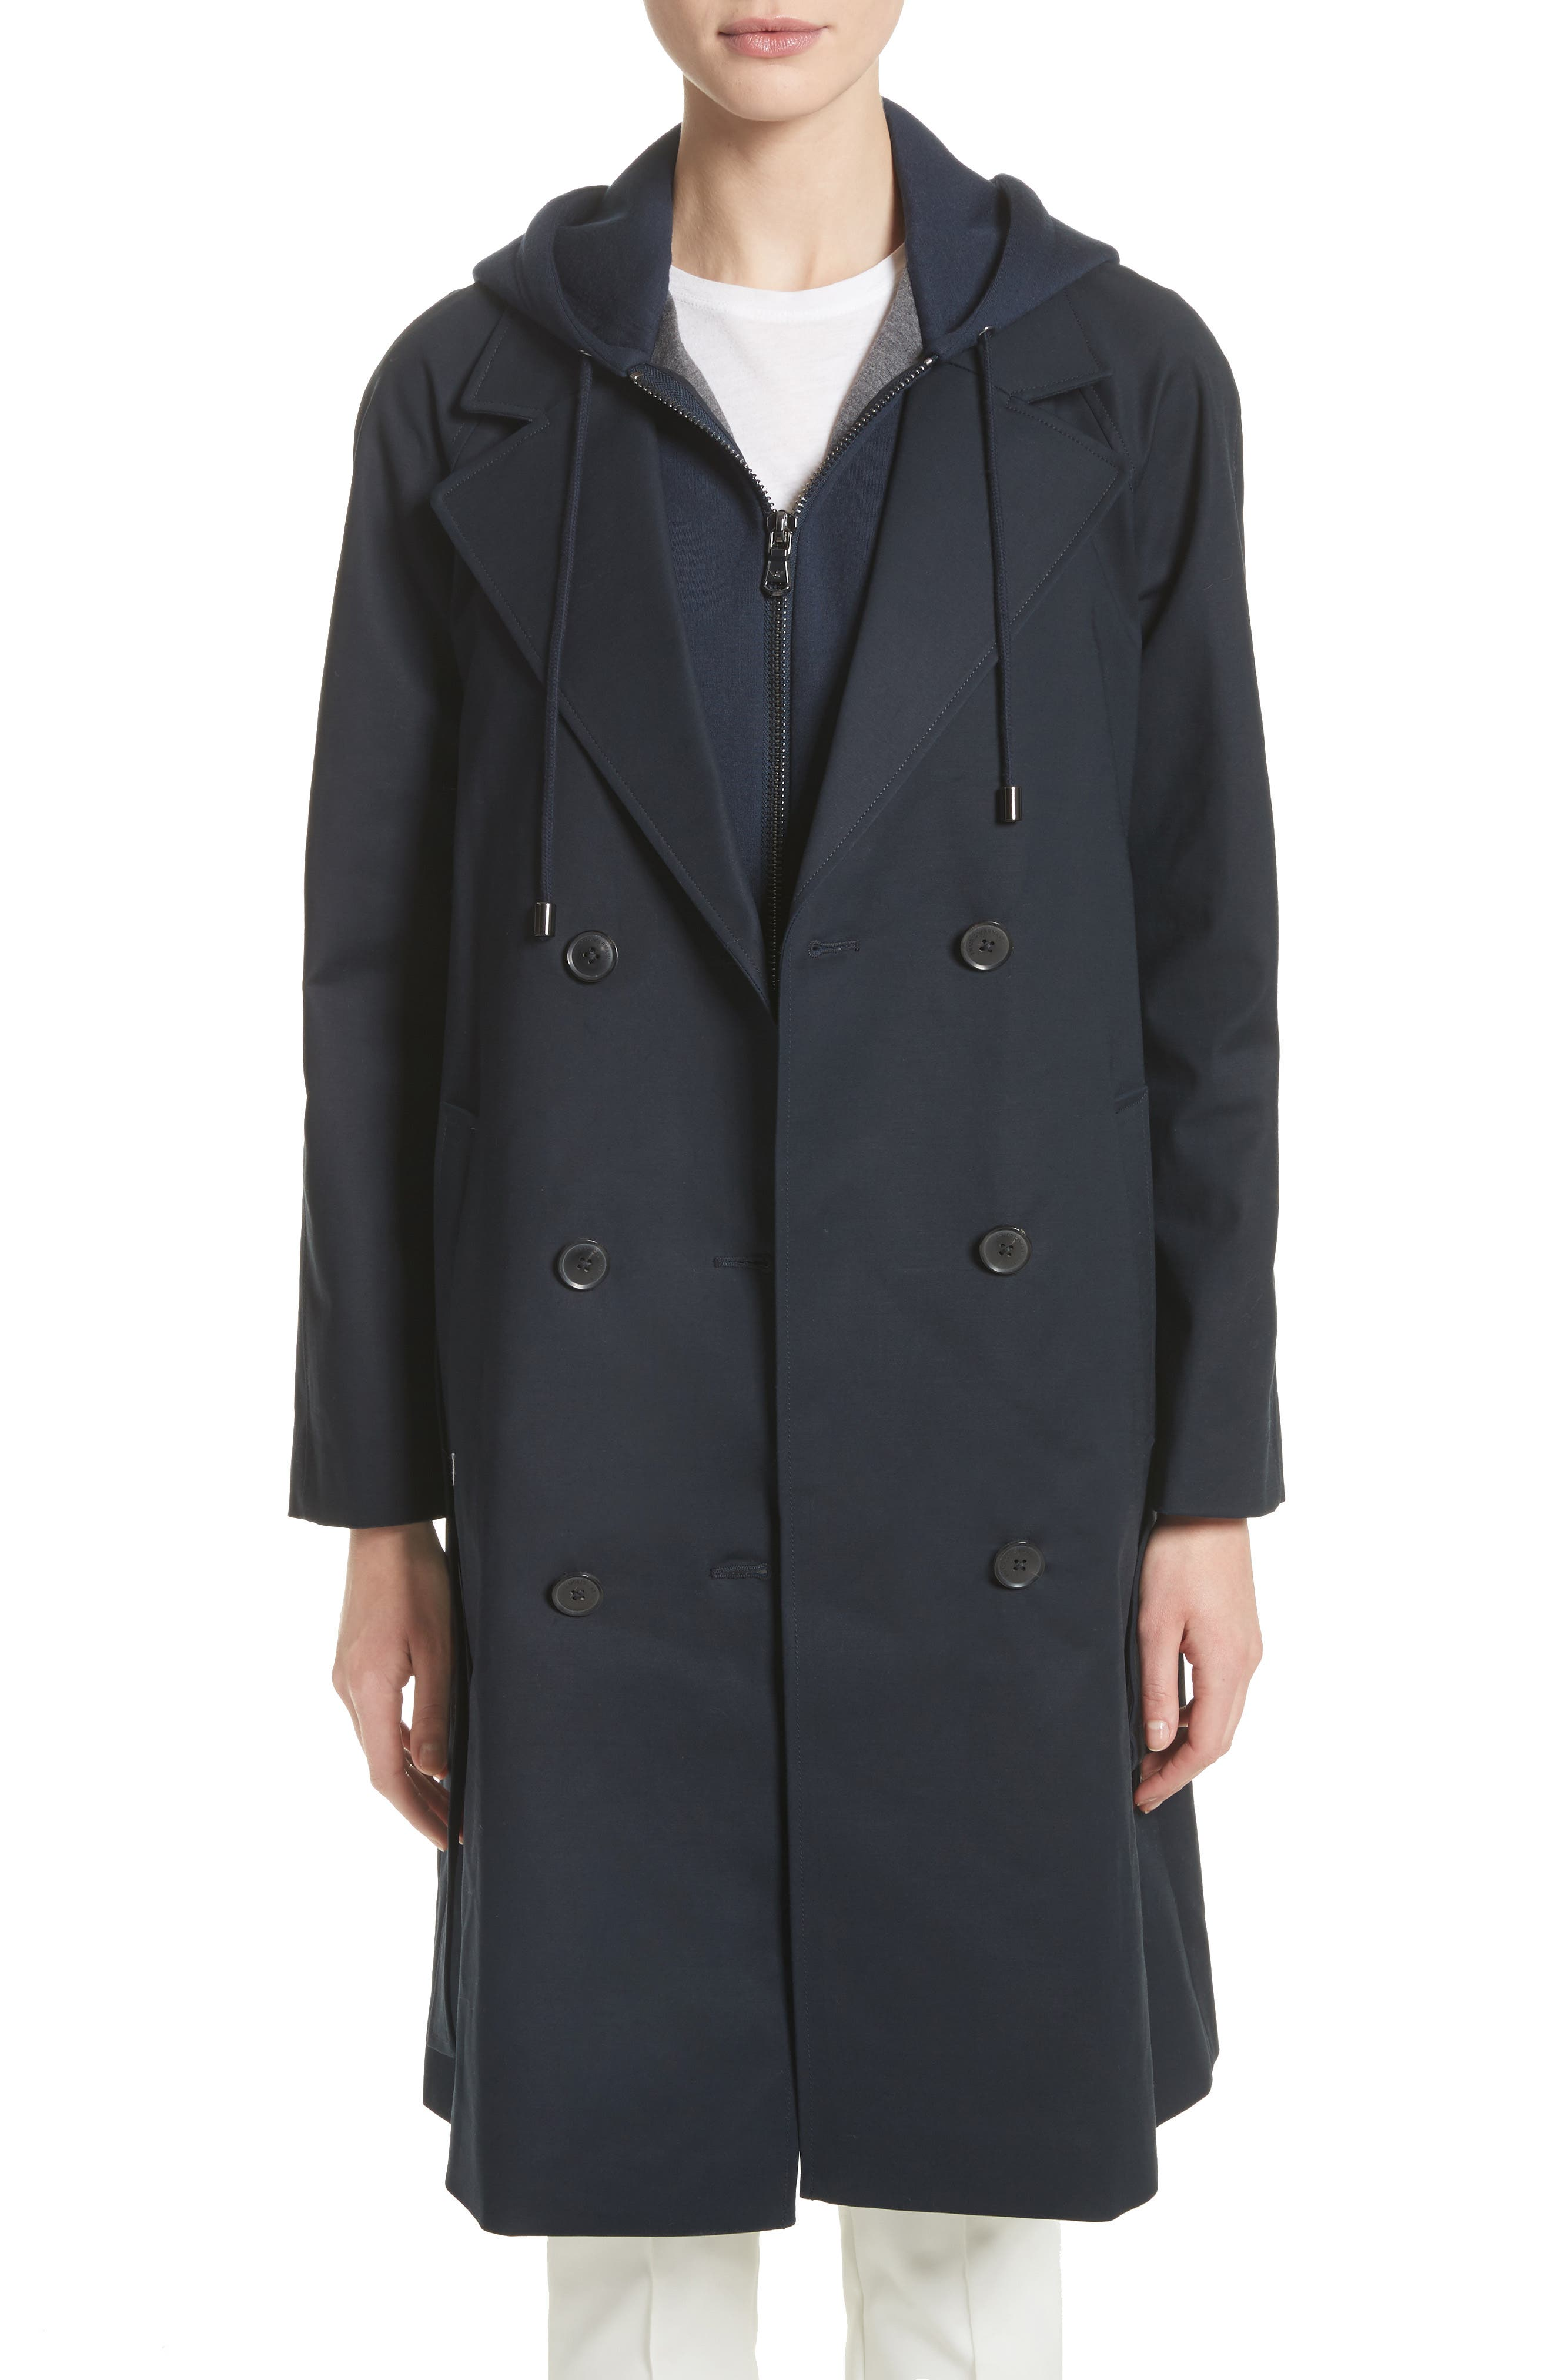 Emporio Armani Double Breasted Cotton Blend Trench Coat with Removable Hoodie Inset